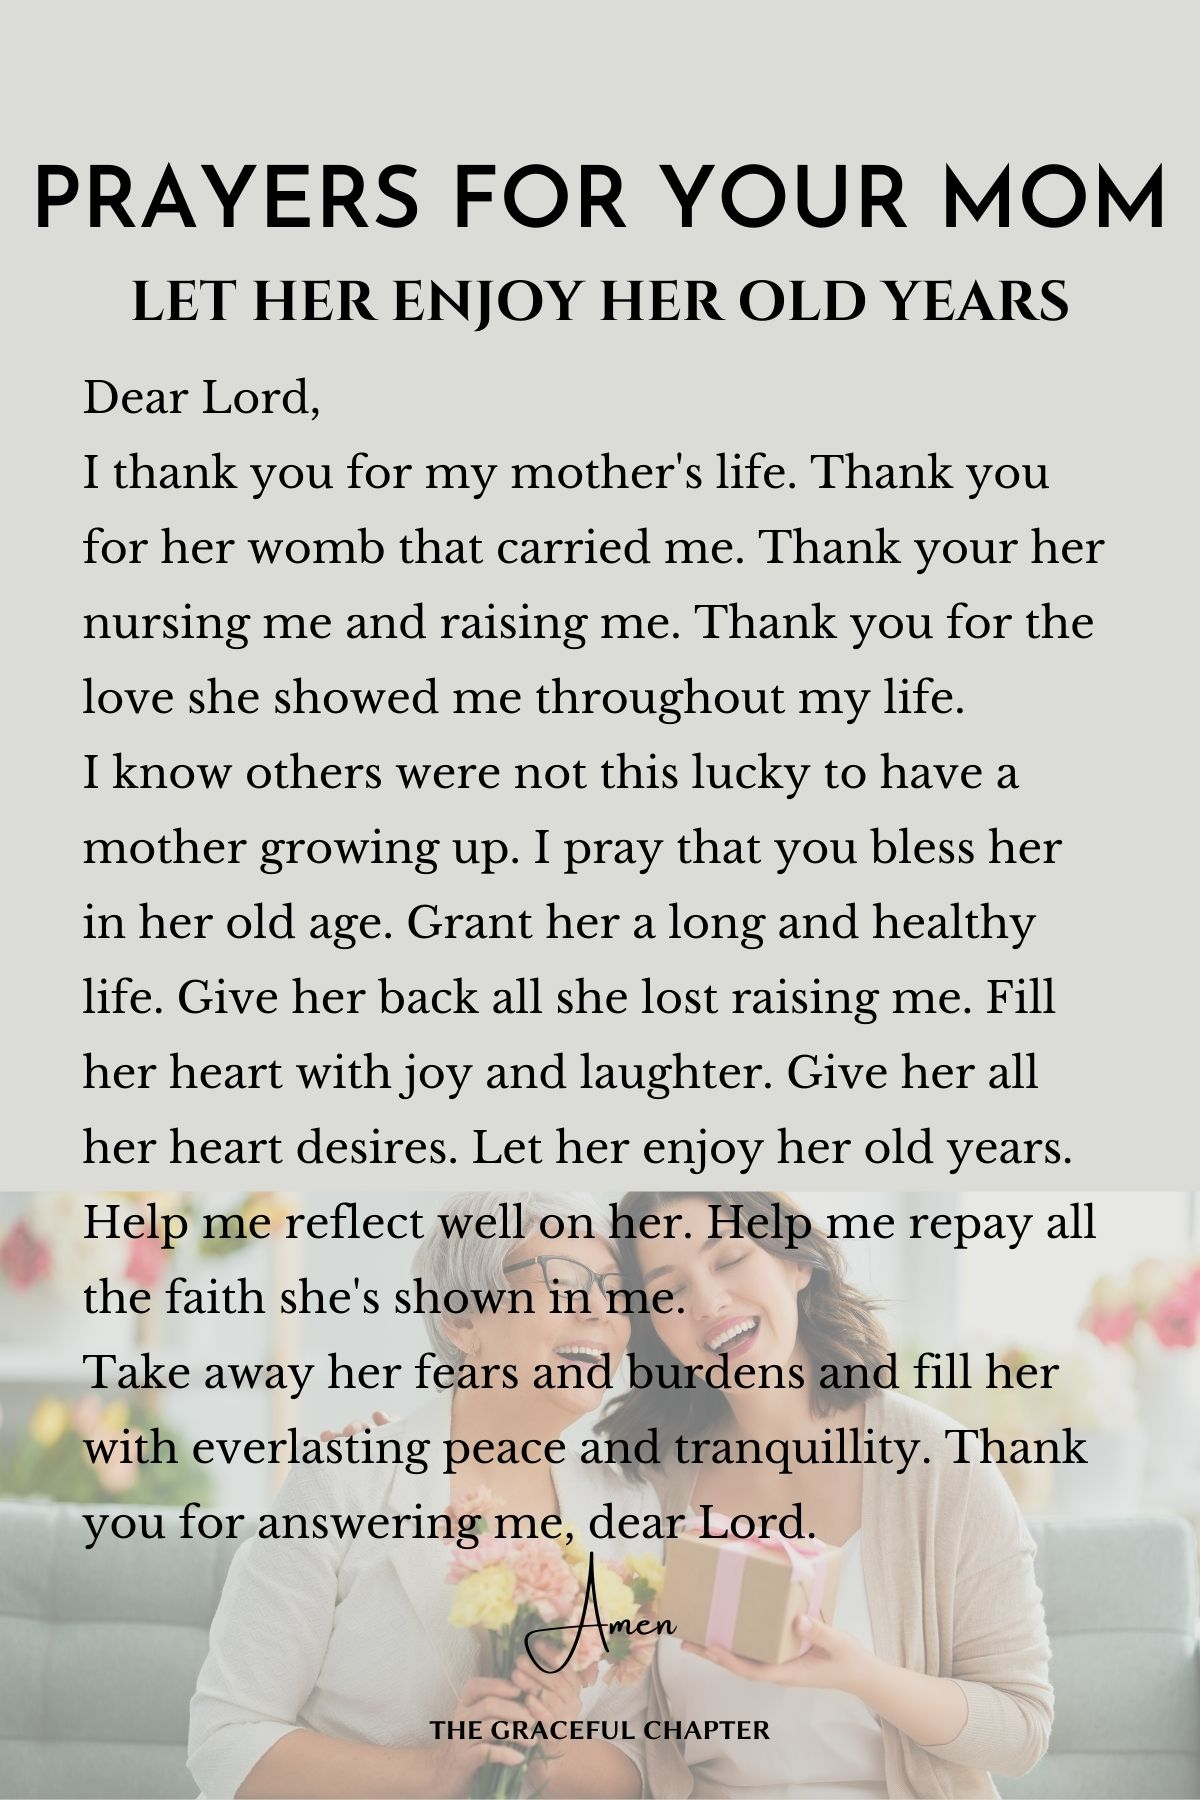 Prayers for my mom Let her enjoy her old years